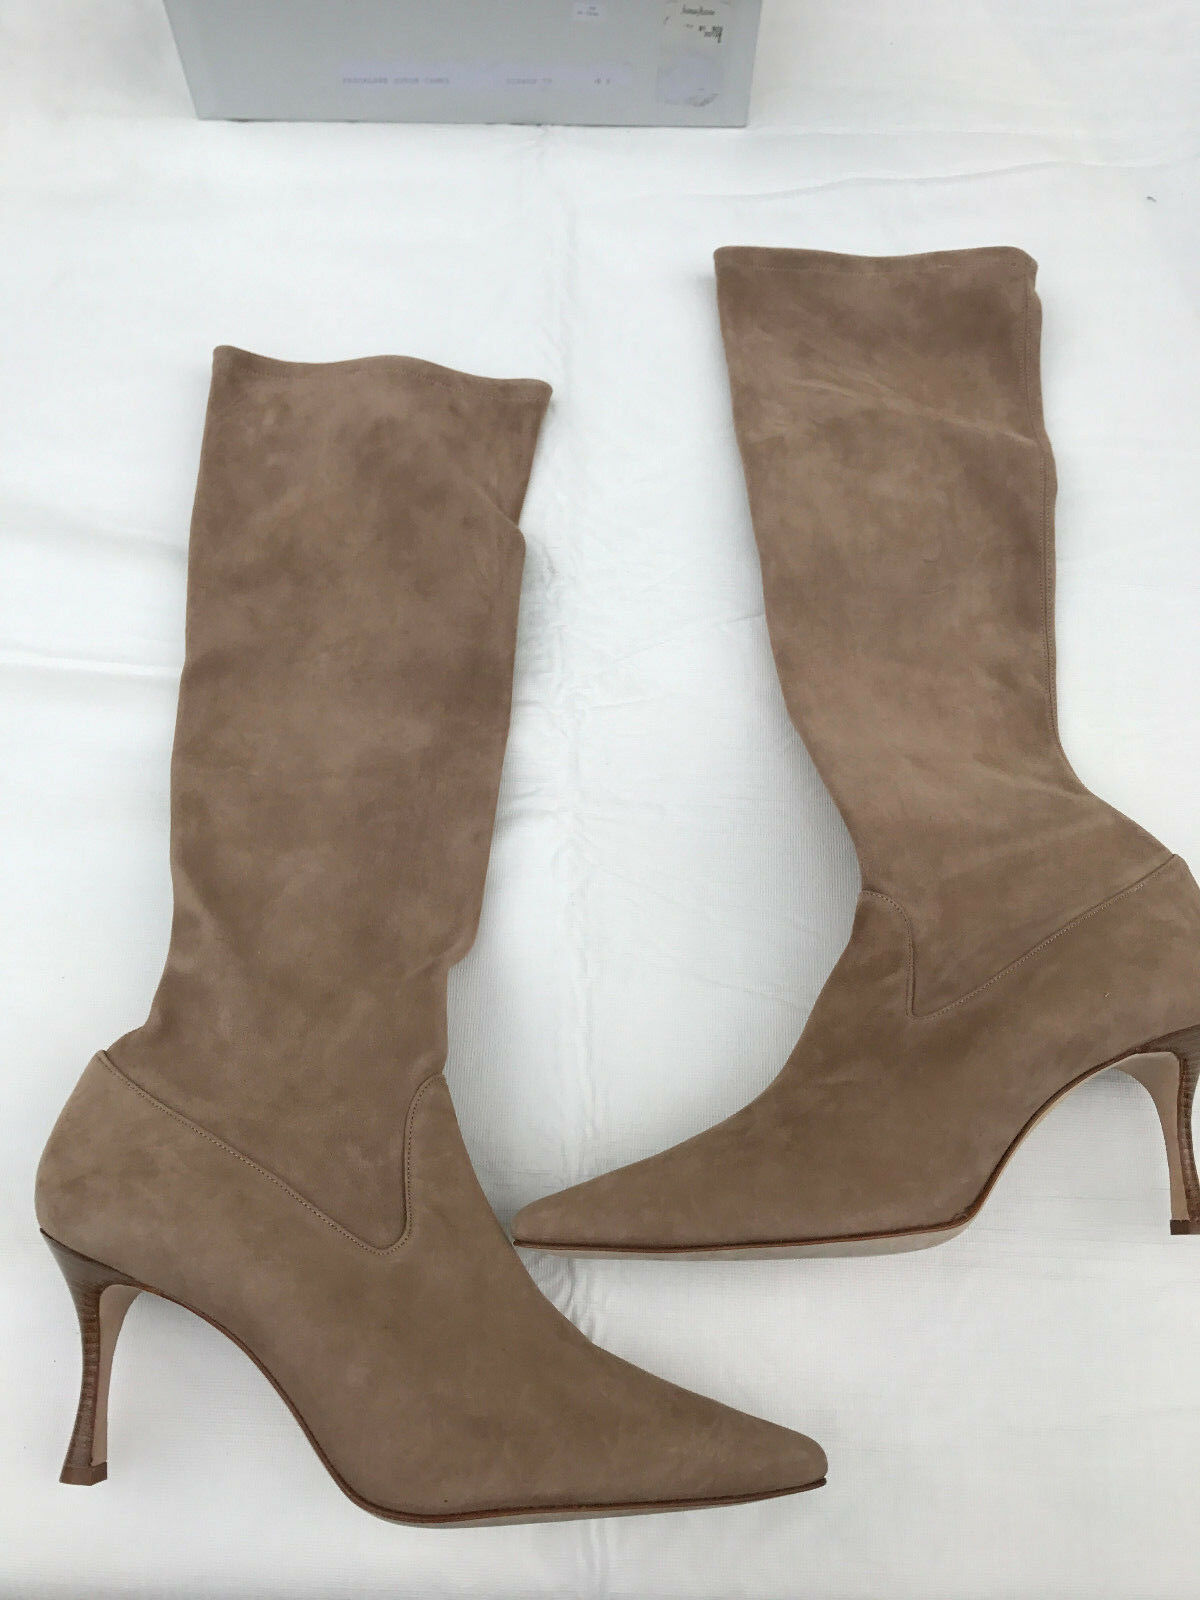 MANOLO BLANIK PASCALARE SUEDE BOOTS IN CAMEL SIZE 41